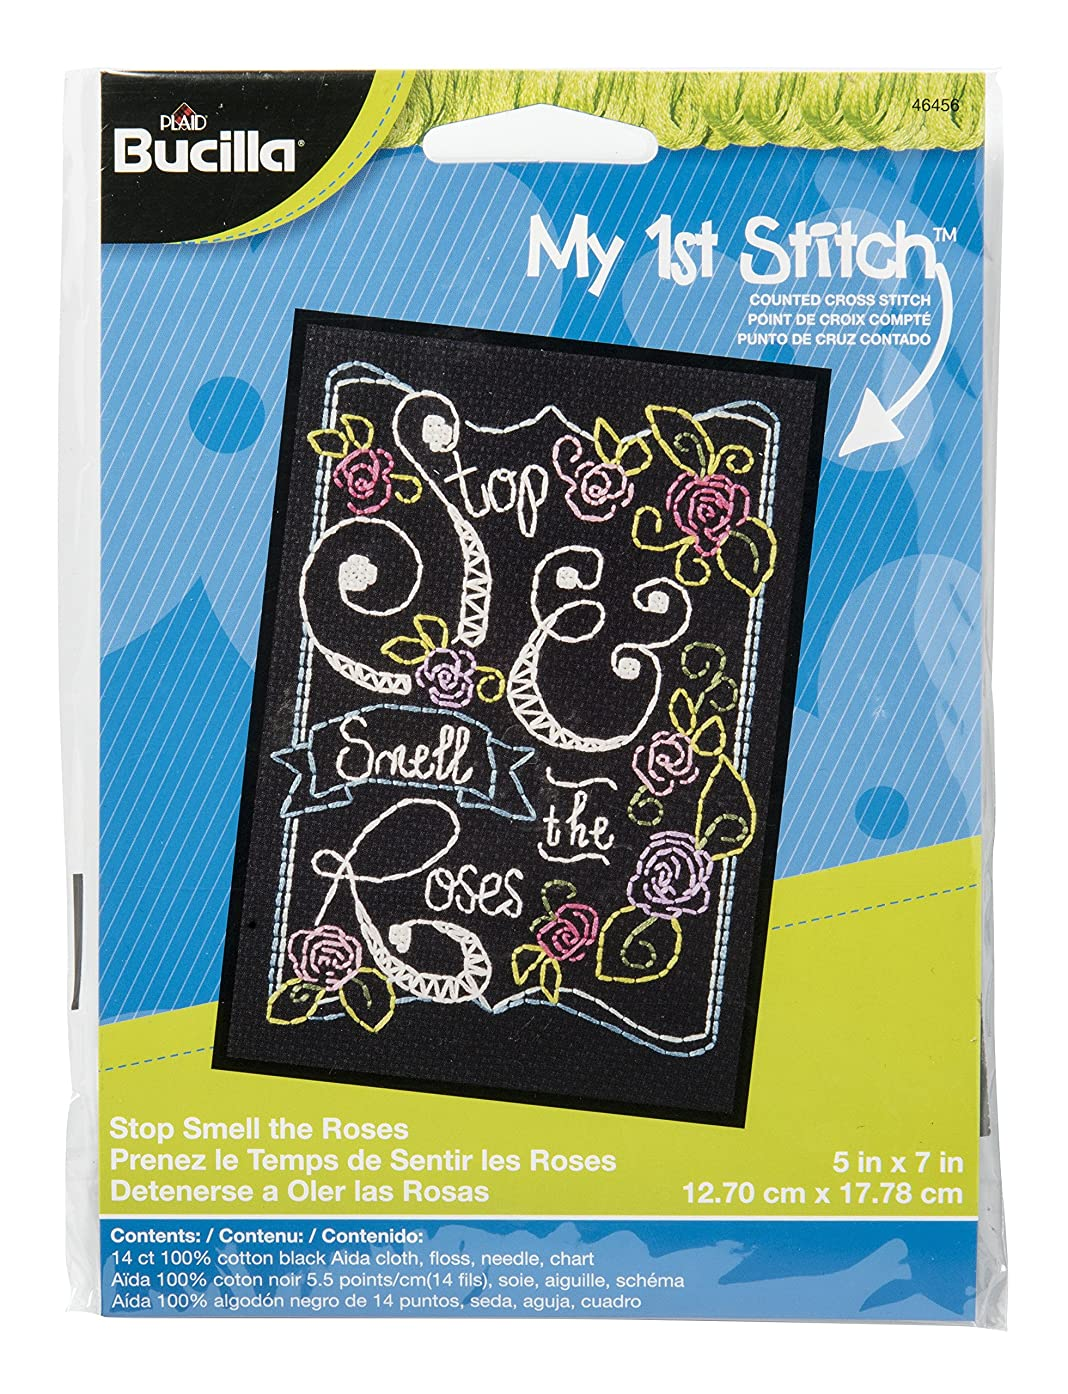 Bucilla My 1st Stitch Counted Cross Stitch Kit, 5 by 7-Inch, 46456 Stop Smell The Roses